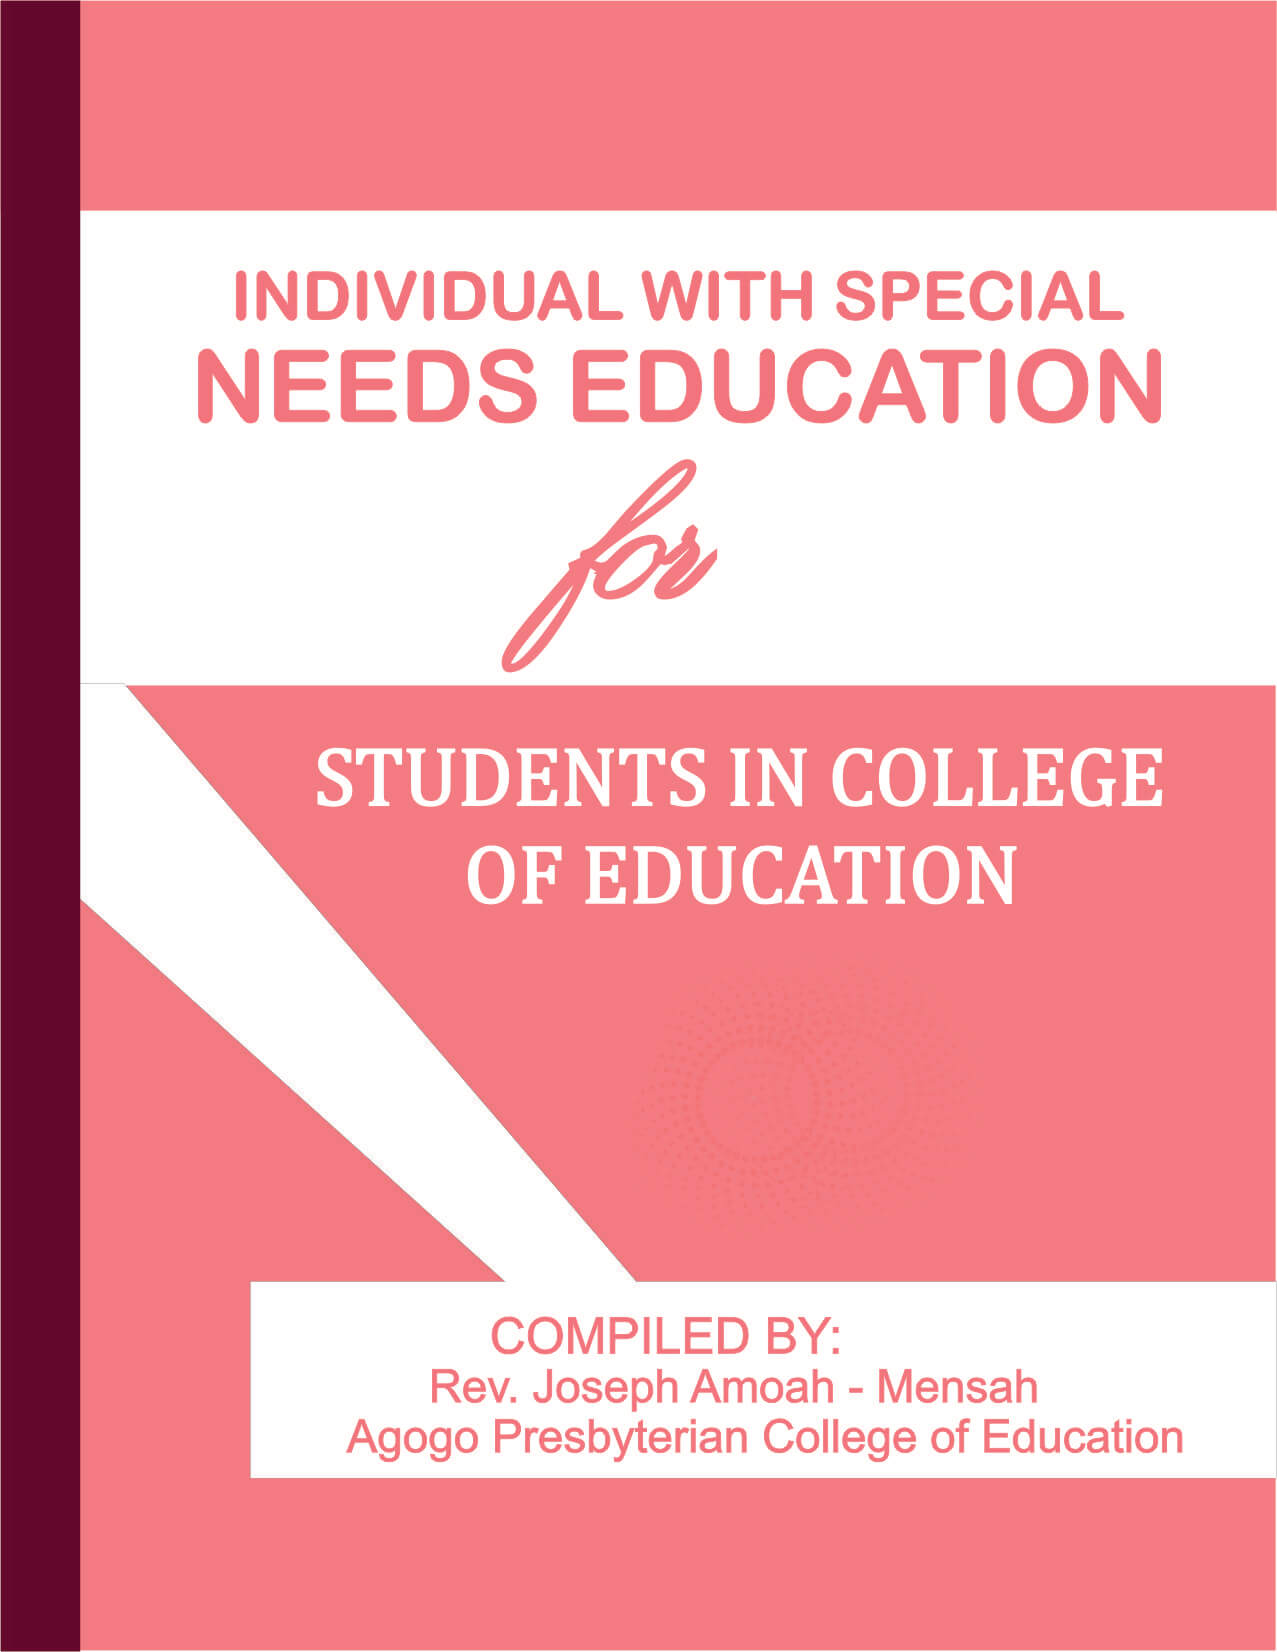 INDIVIDUALS WITH SPECIAL NEEDS EDUCATION